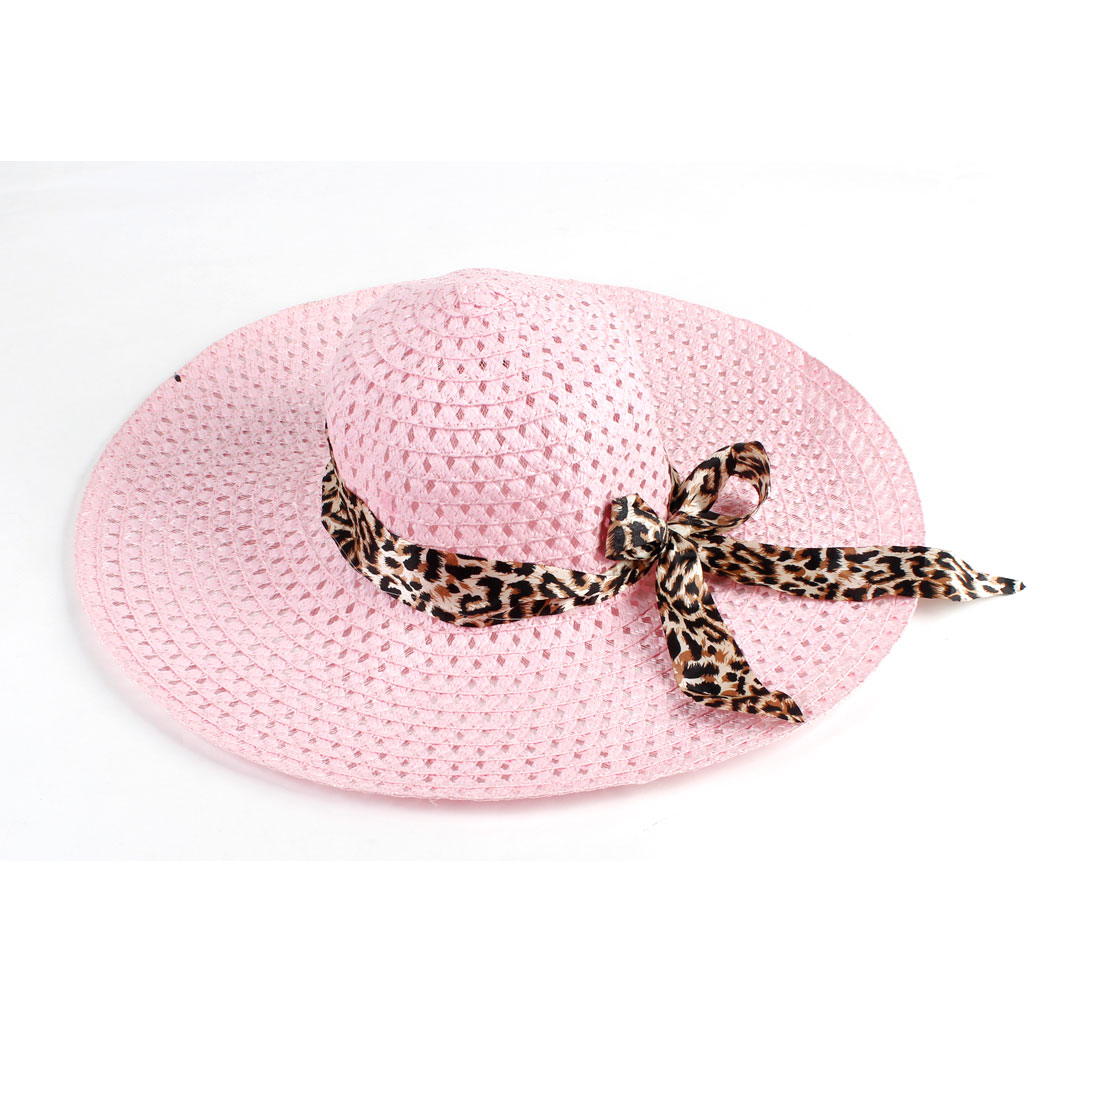 Brown Self Tie Bow Wide Brim Hollow Out Design Pink Beach Sun Hat for Lady